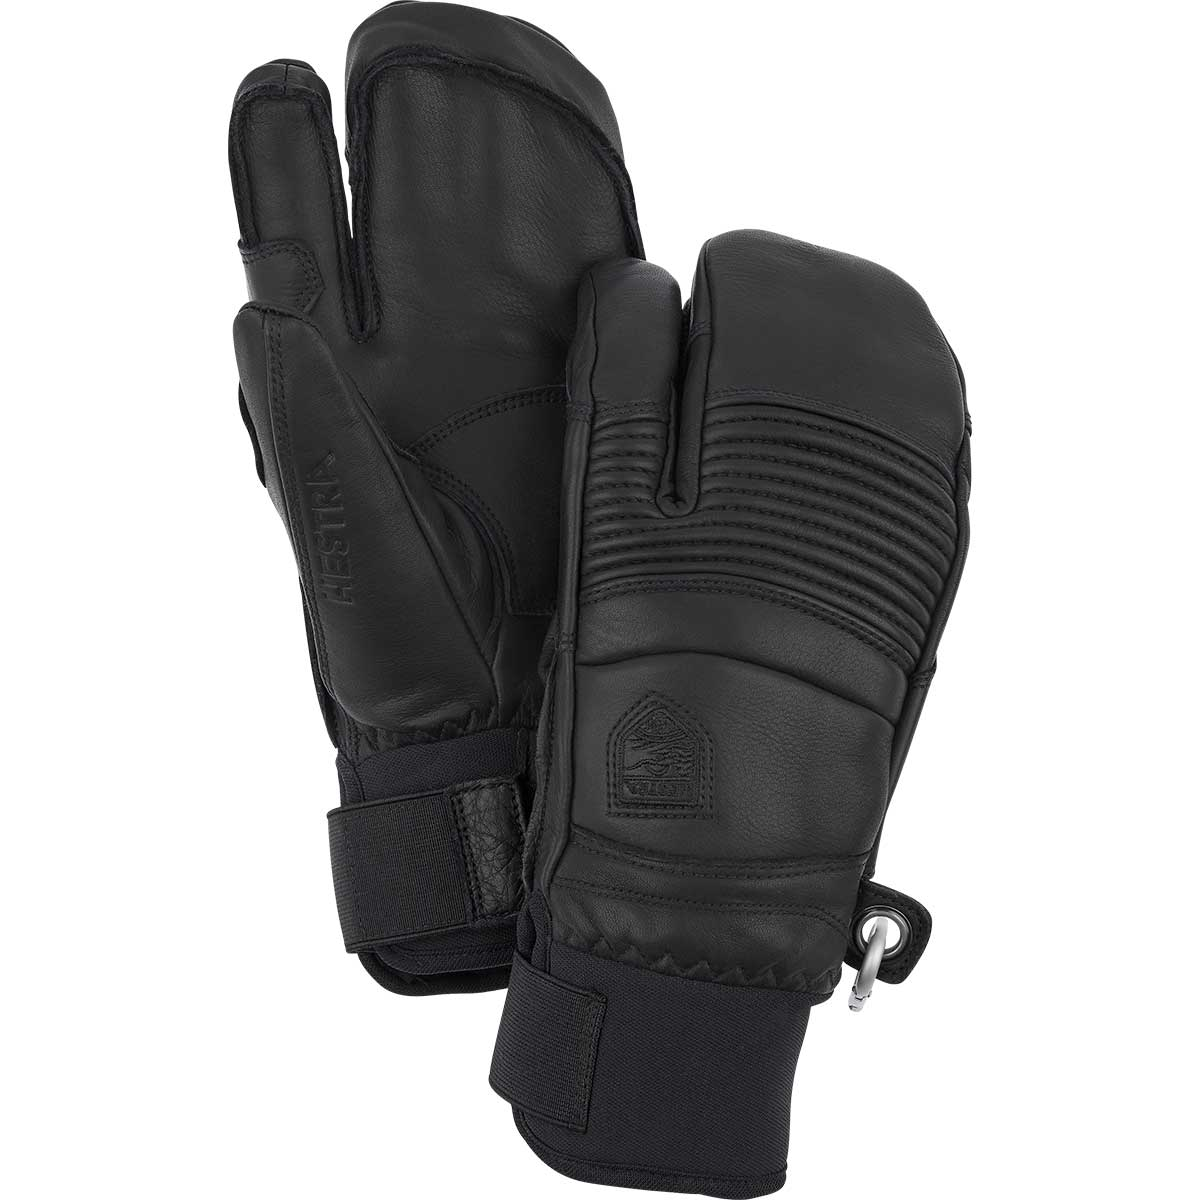 Hestra Leather Fall Line 3-Finger gloves in black